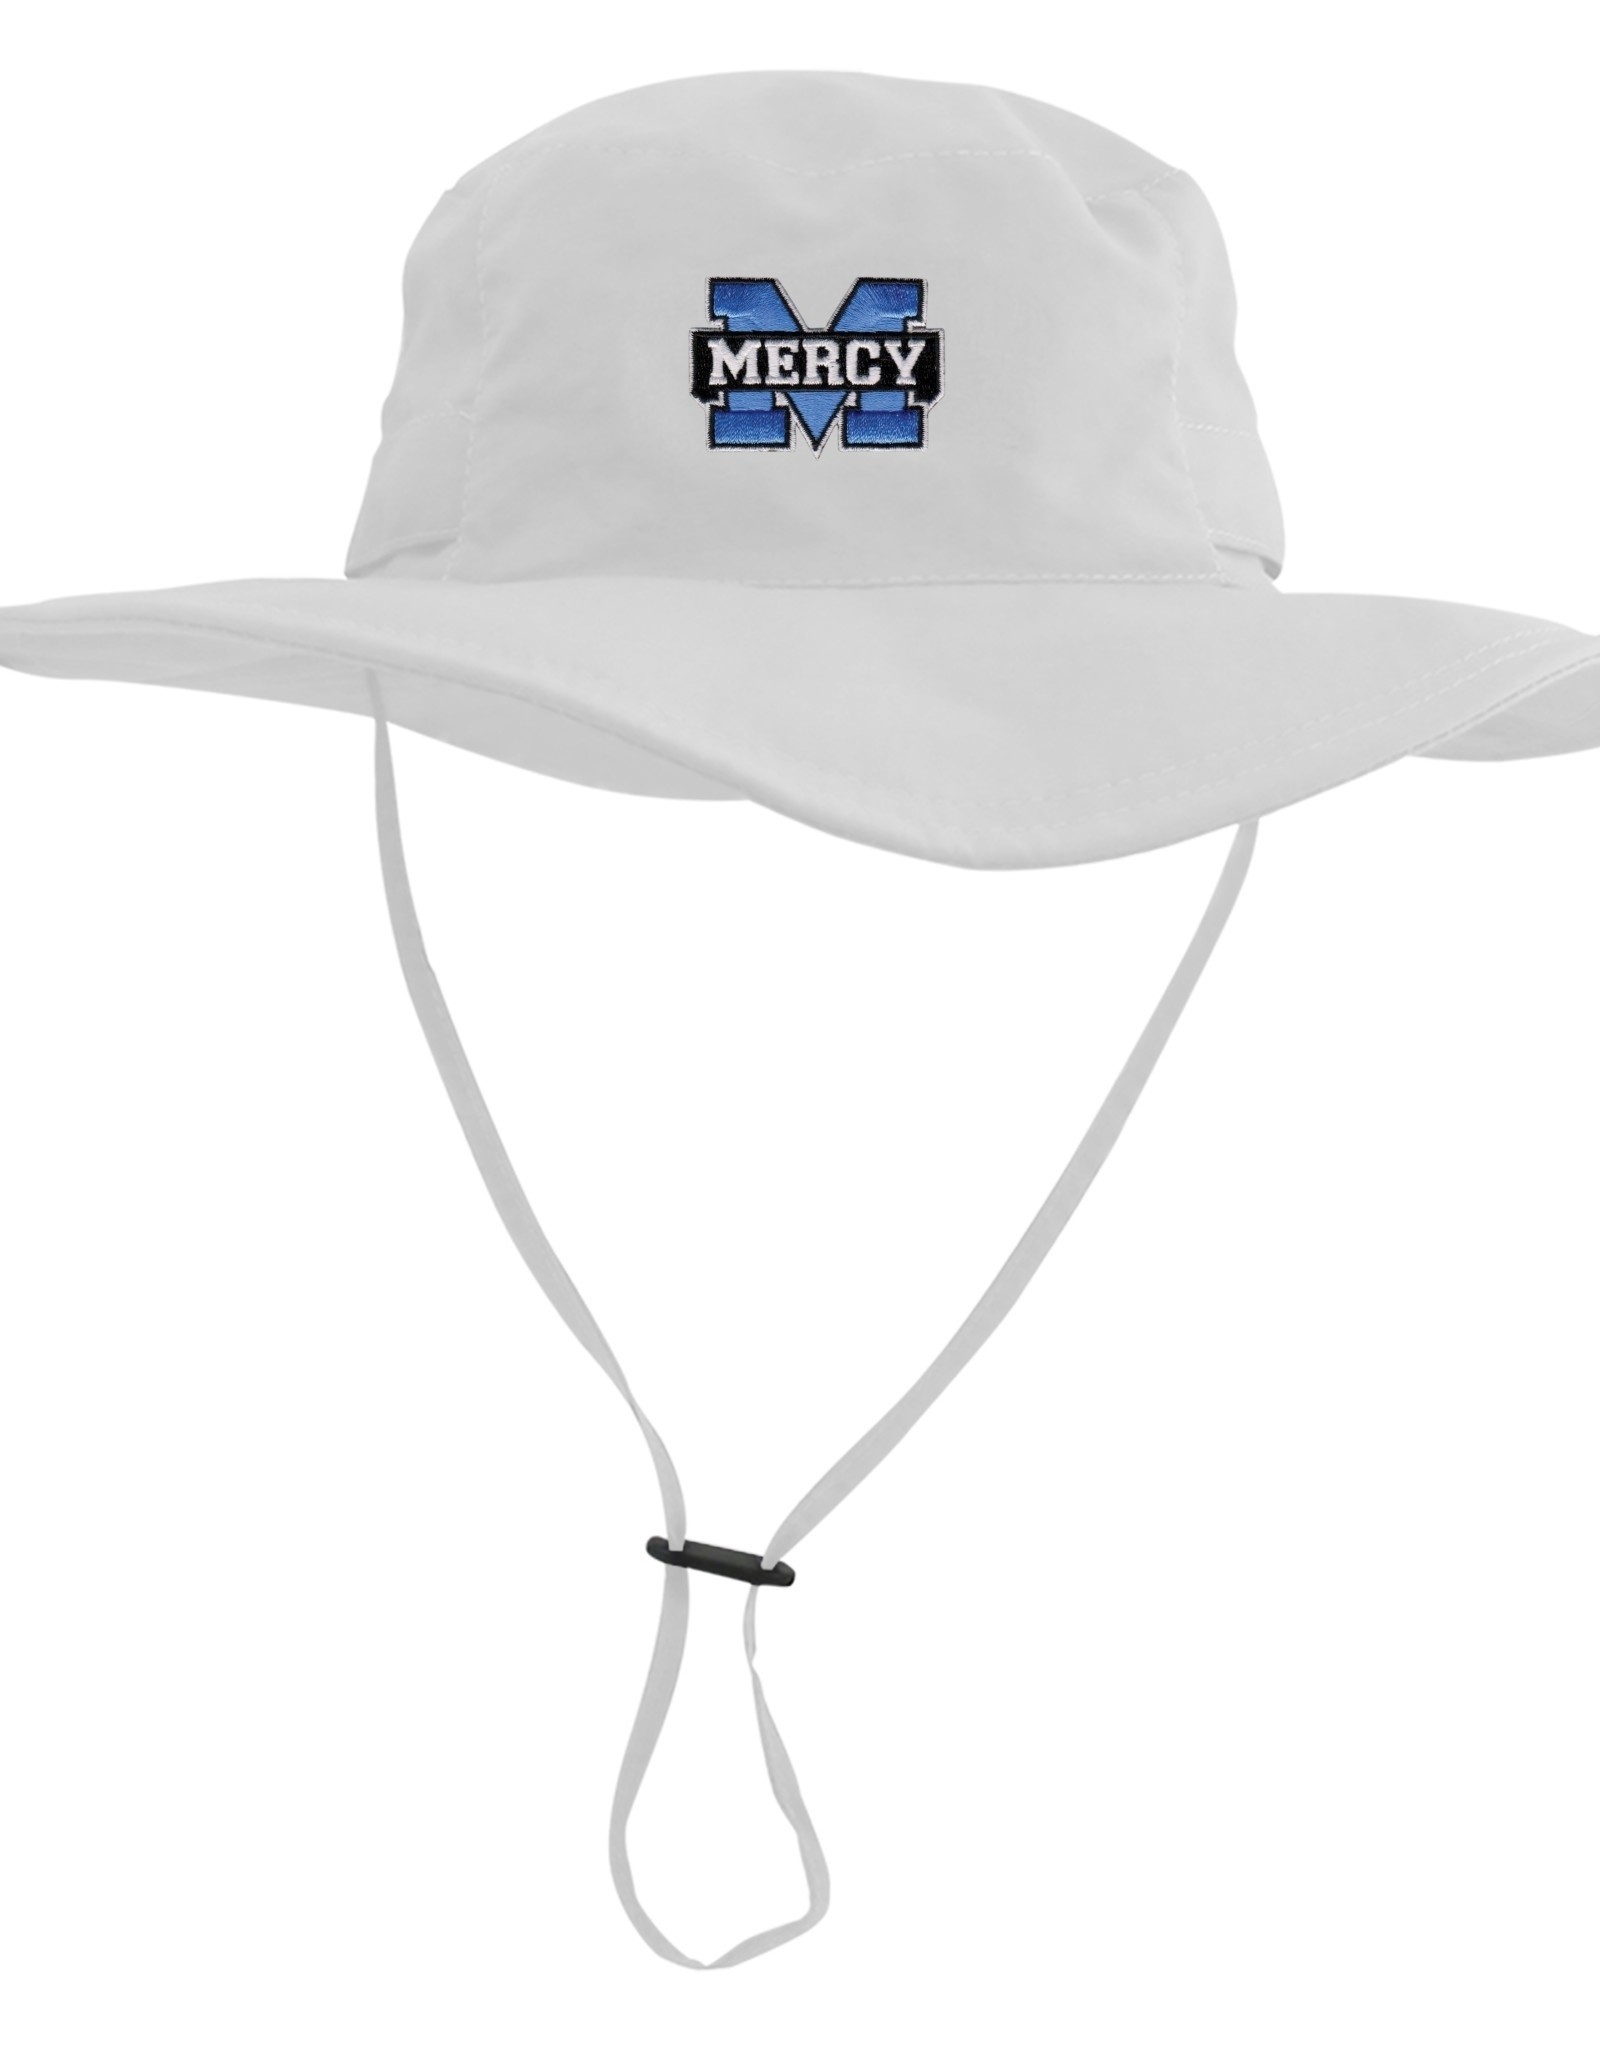 LOGOFIT Mercy Outback Boonie Hat